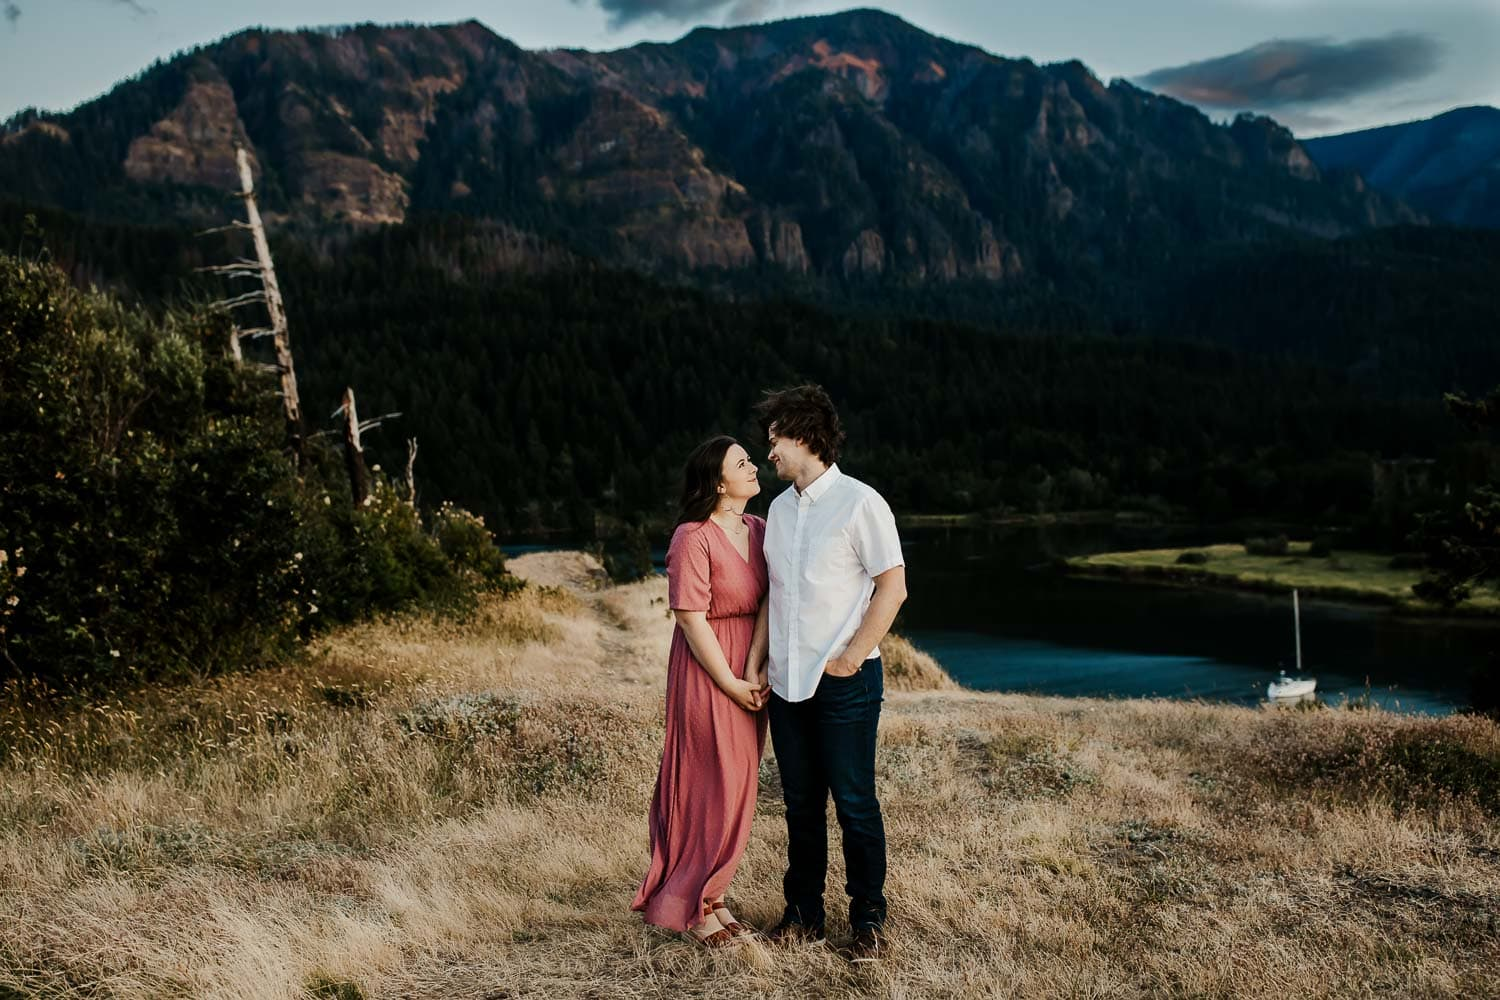 couple holding hands with a mountain in the background - best couples locations